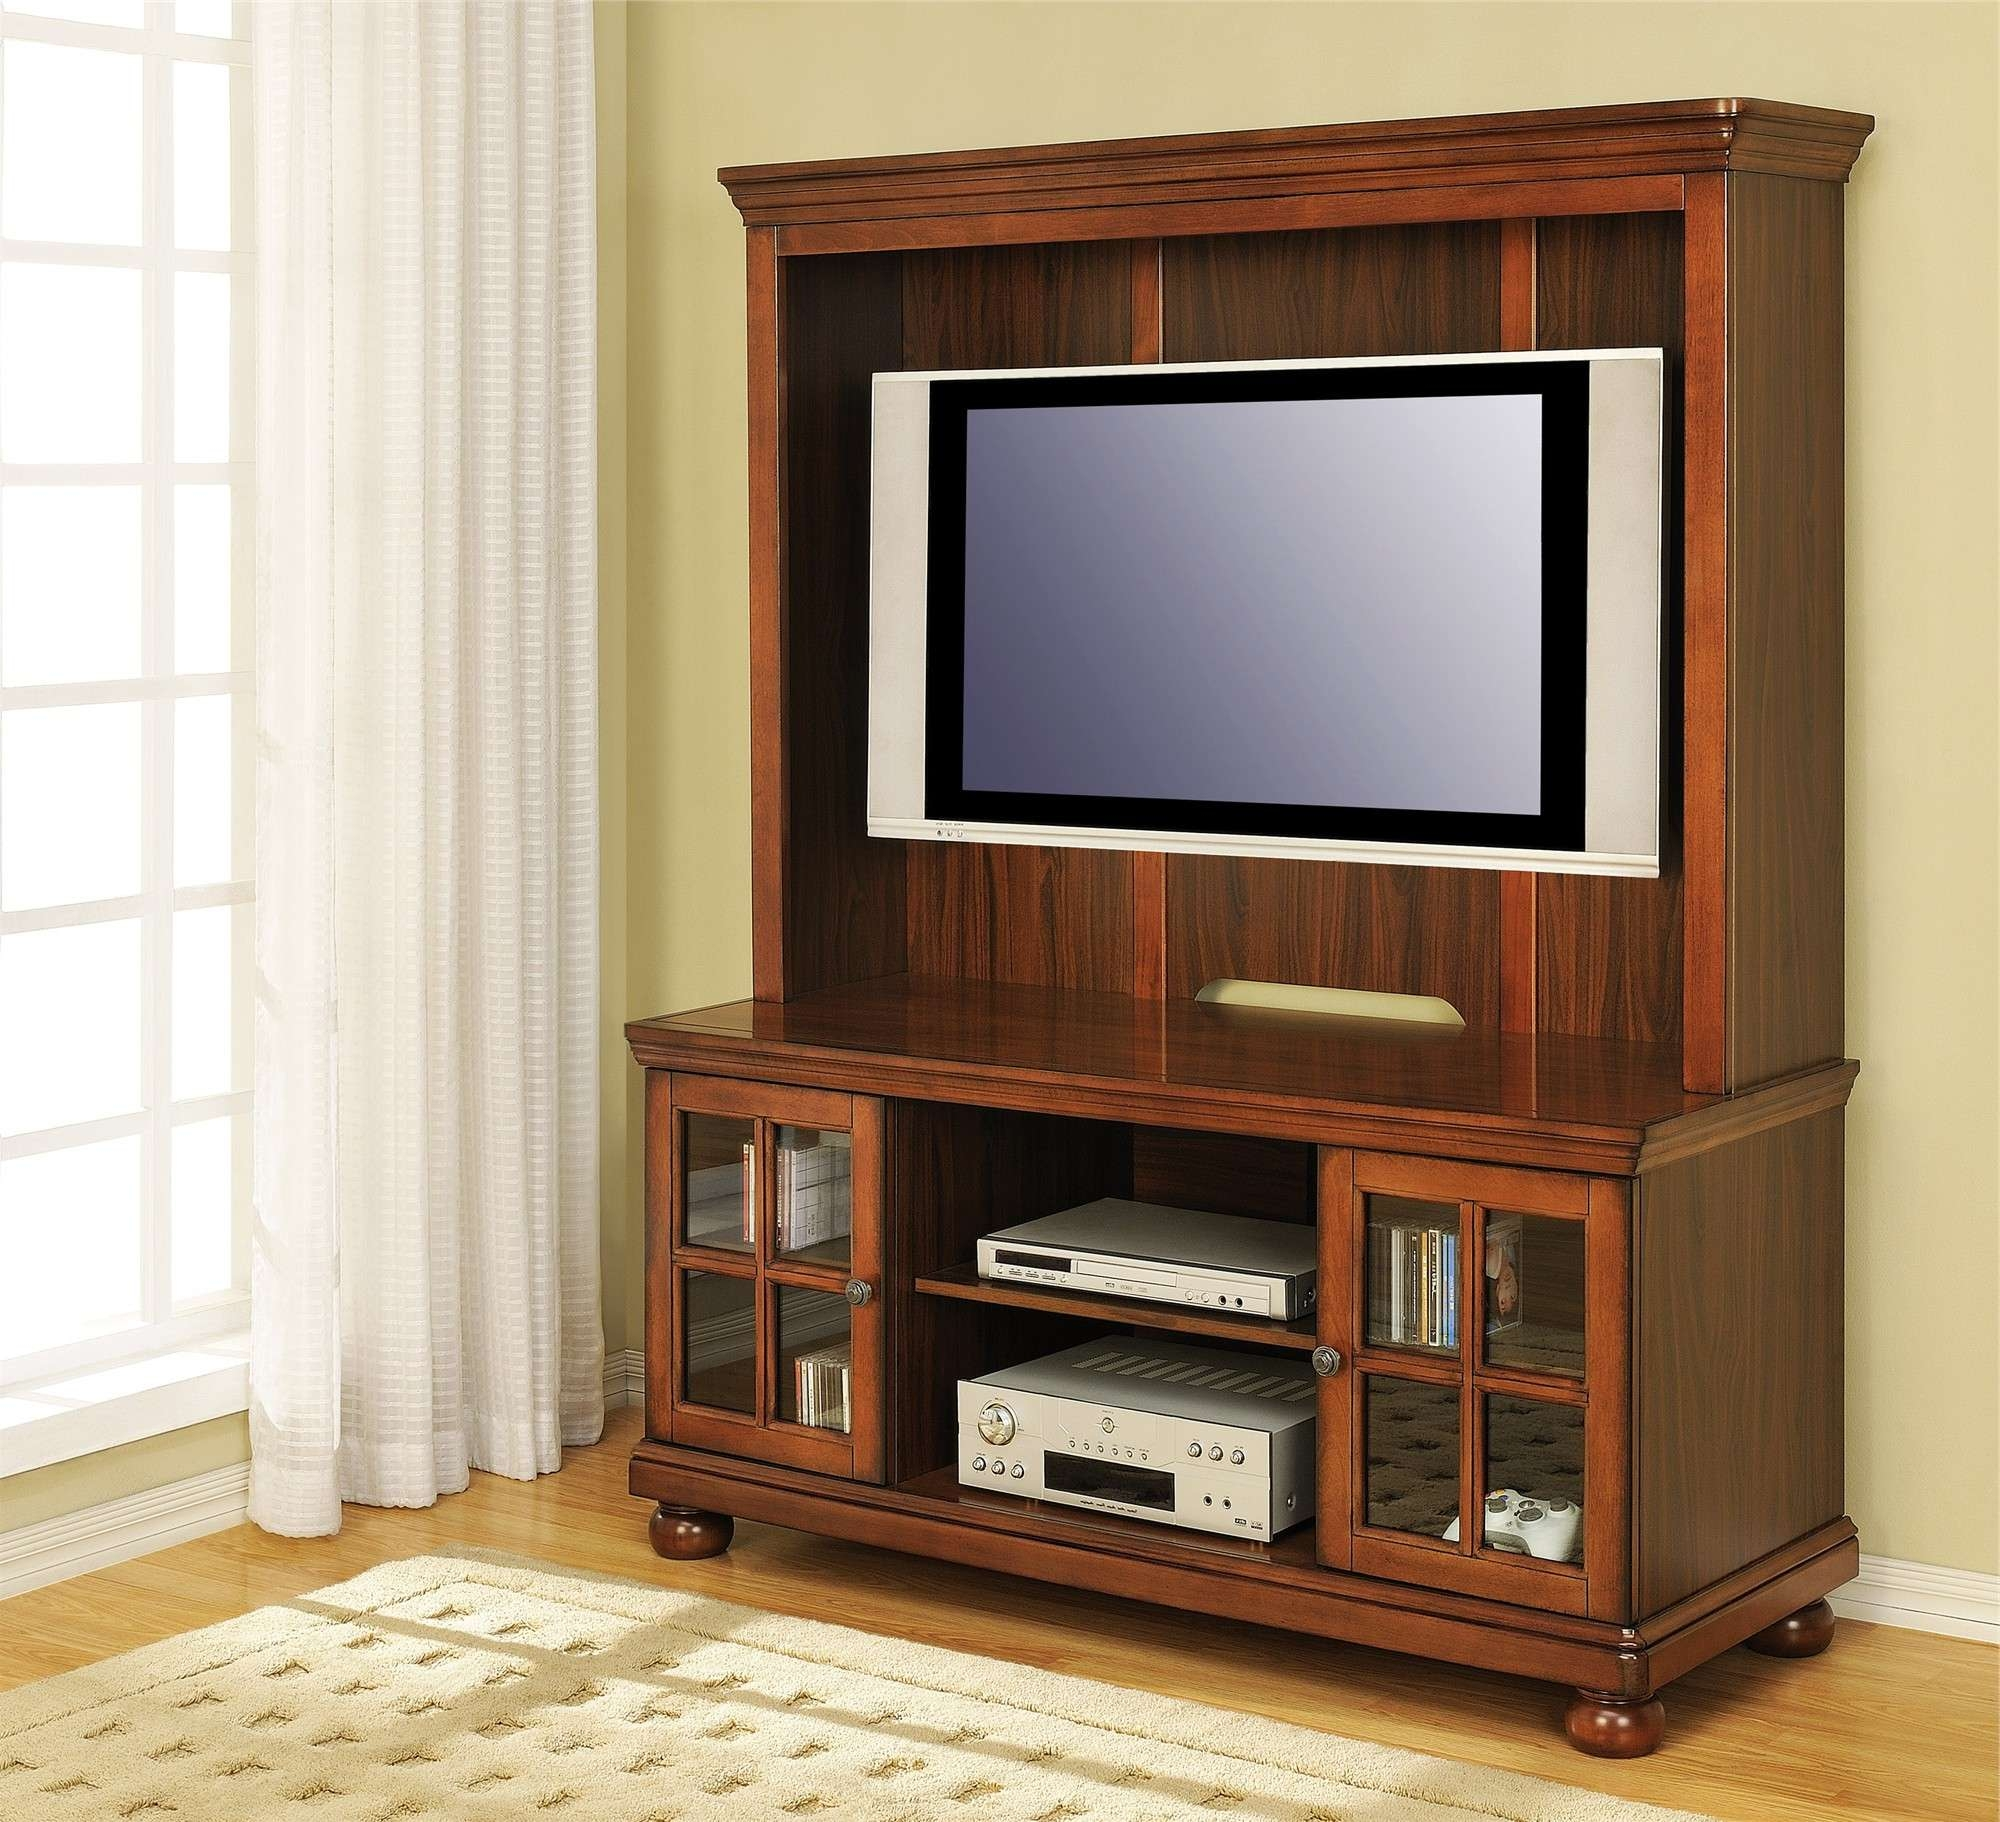 Brown Wooden Cabinet With Glass Door And Rectangle White Flat Throughout Enclosed Tv Cabinets For Flat Screens With Doors (View 1 of 20)